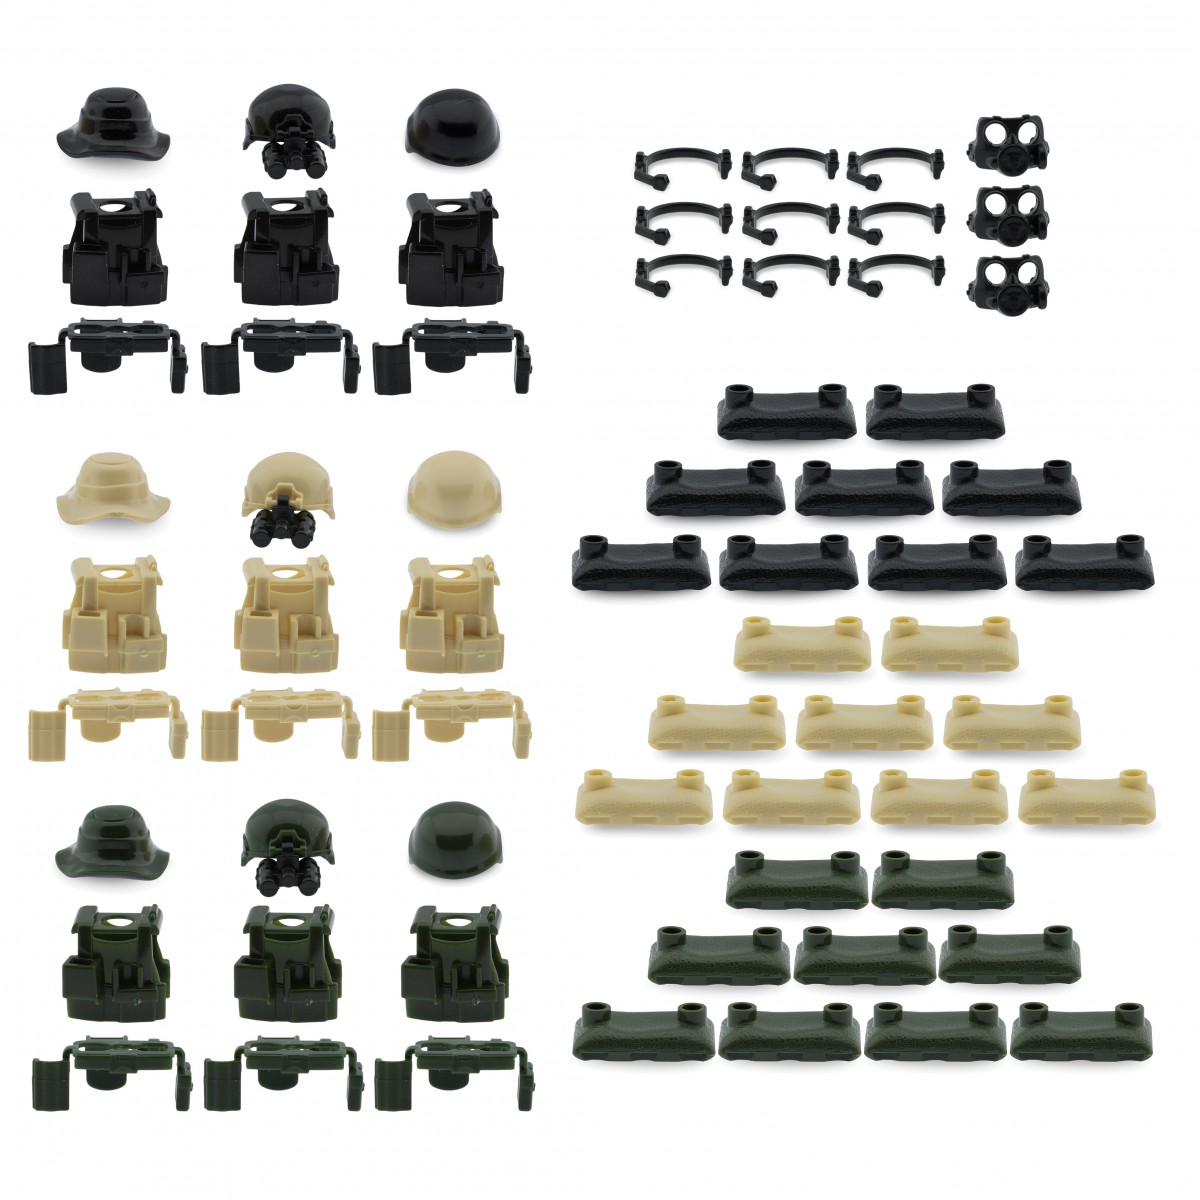 Custom Minifigures Military Army Guns Weapons Compatible w/ Lego ...